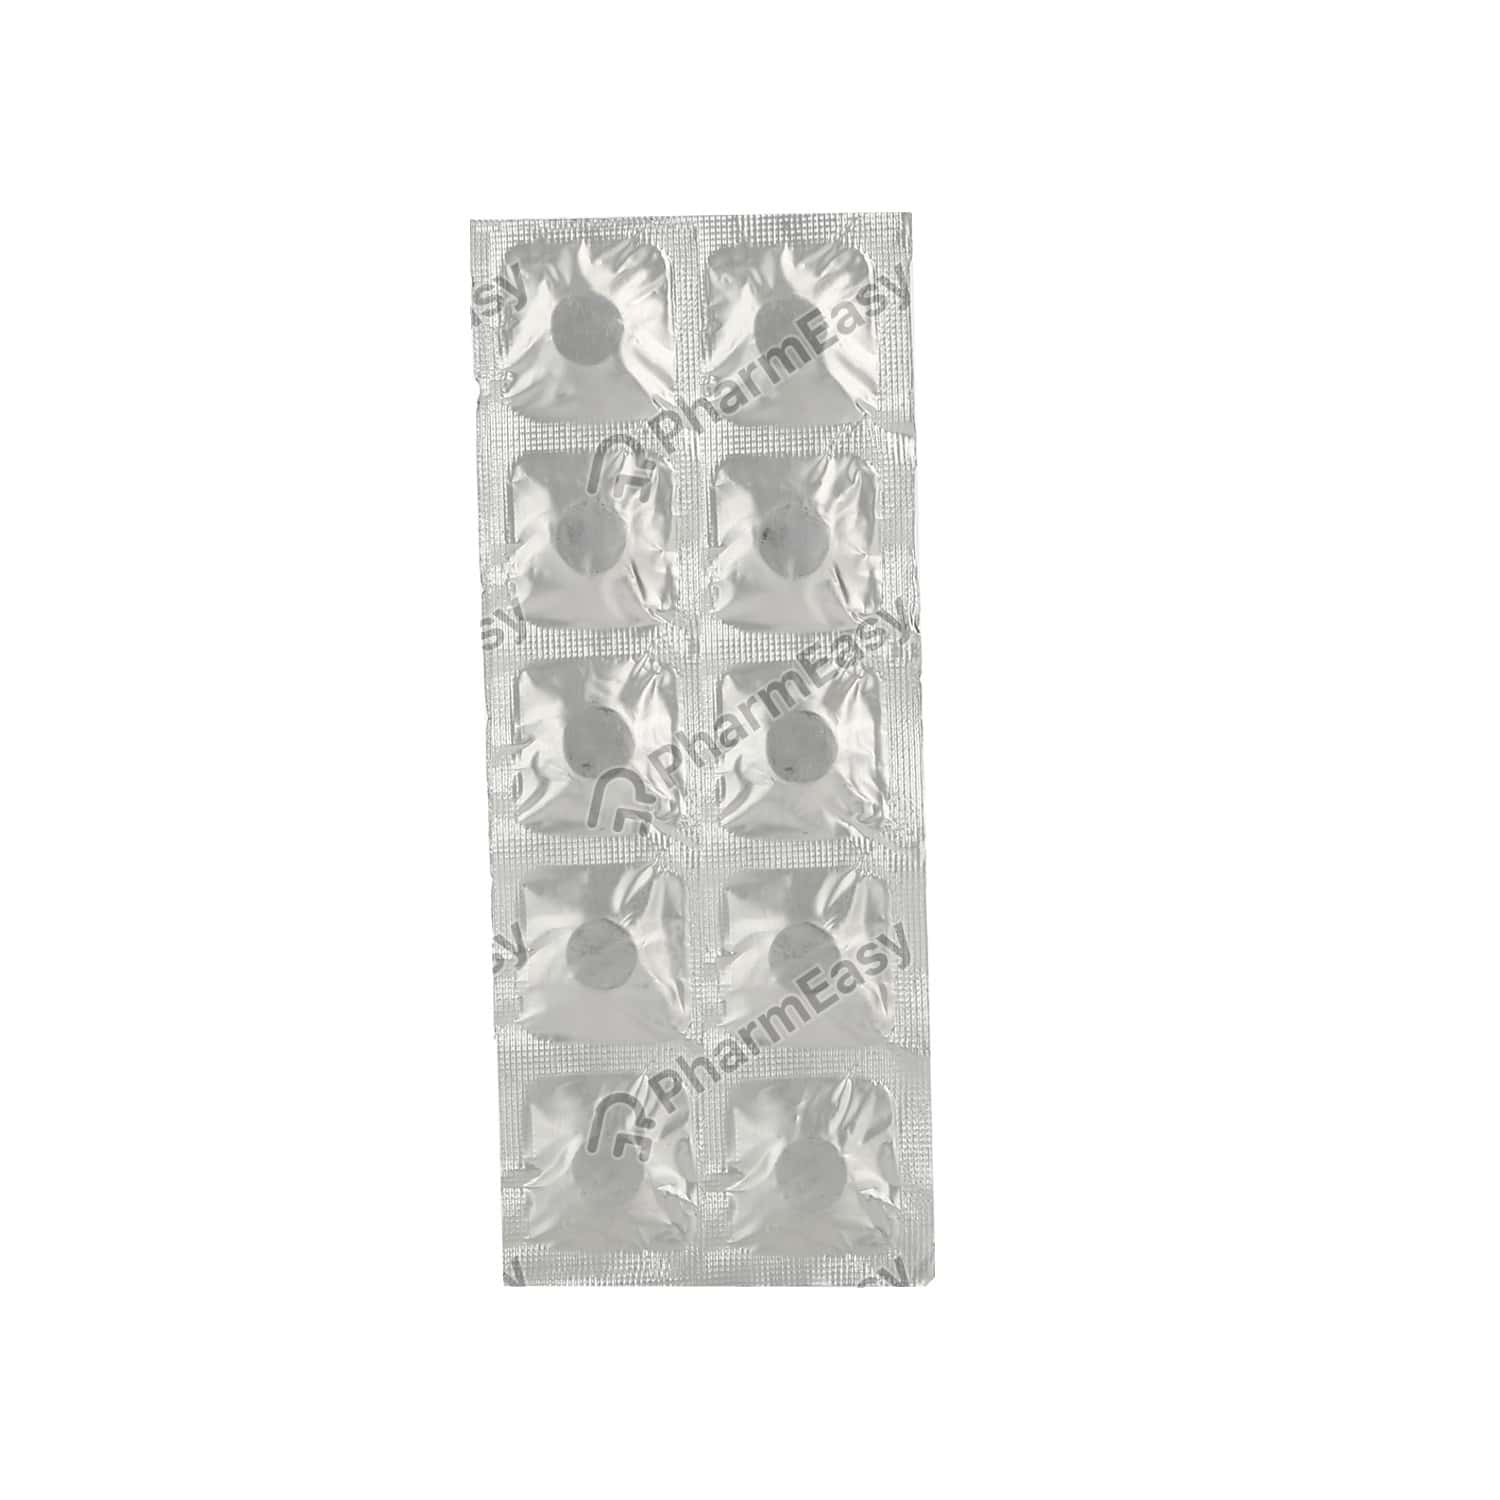 Topcef Dt 200mg Tablet